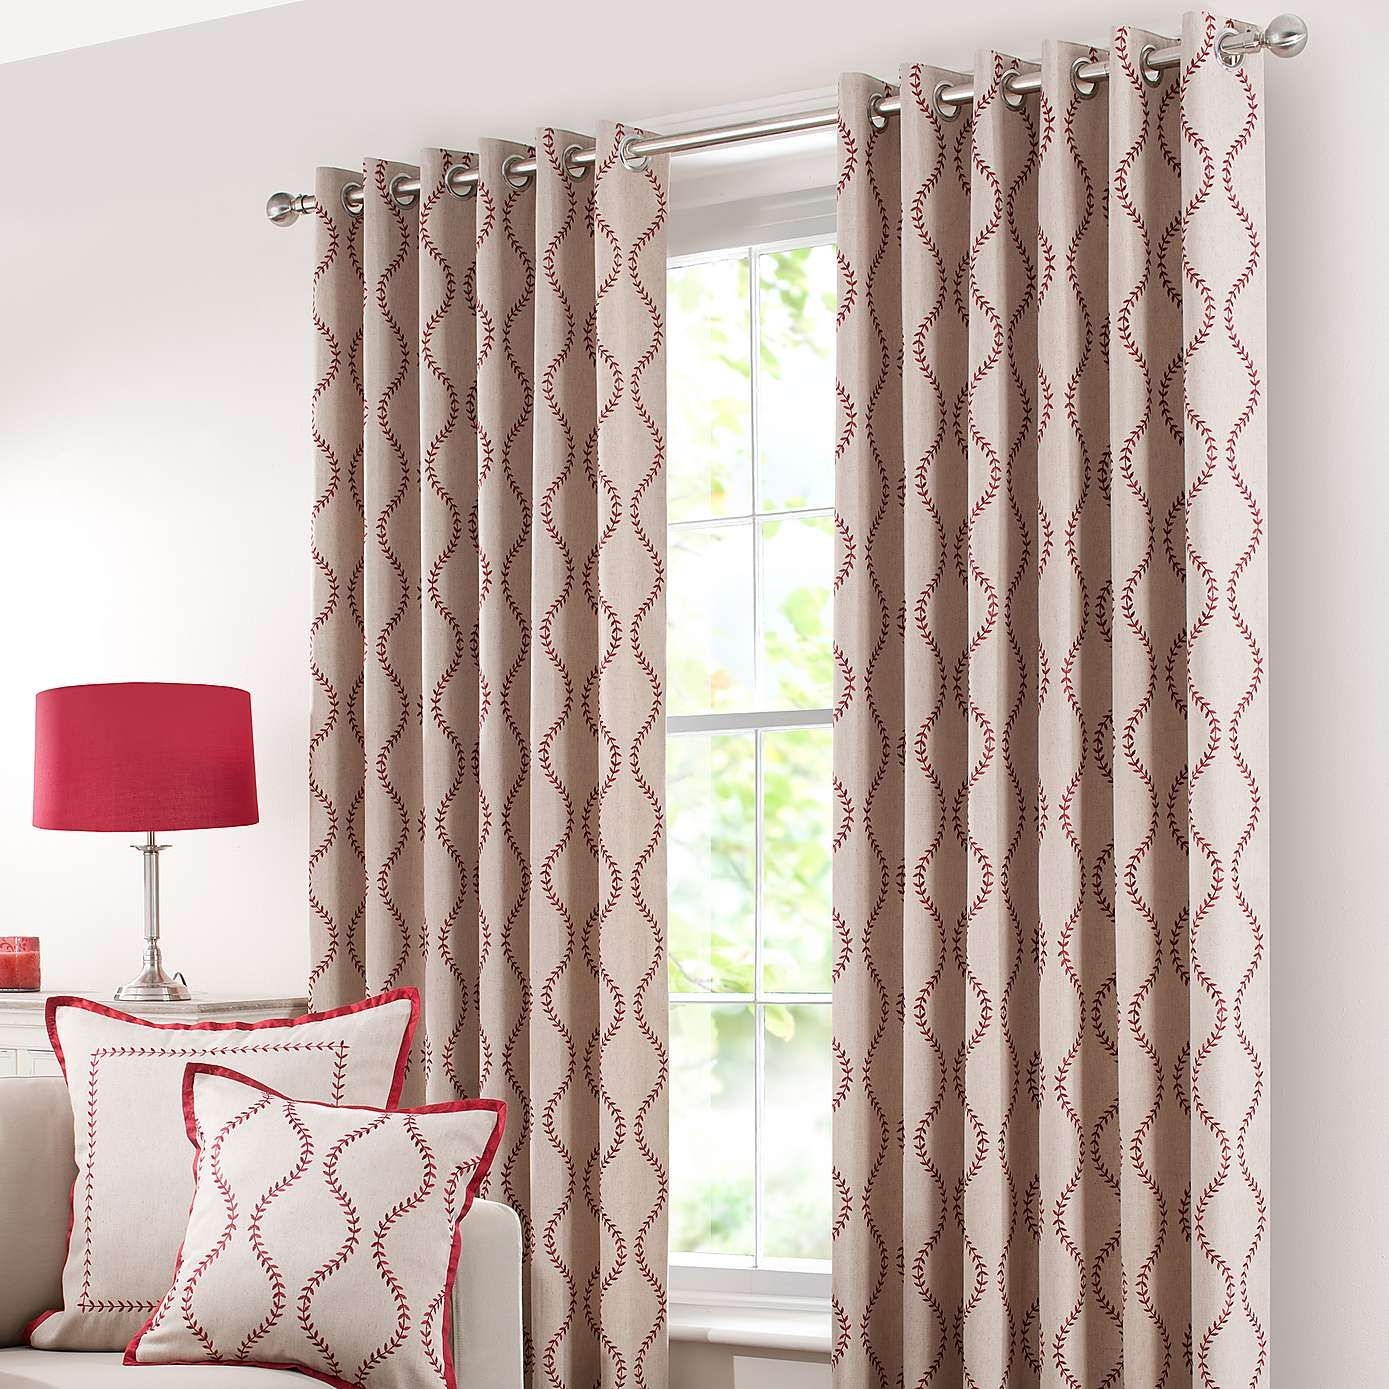 Explore Blinds Curtains Dining Rooms And More